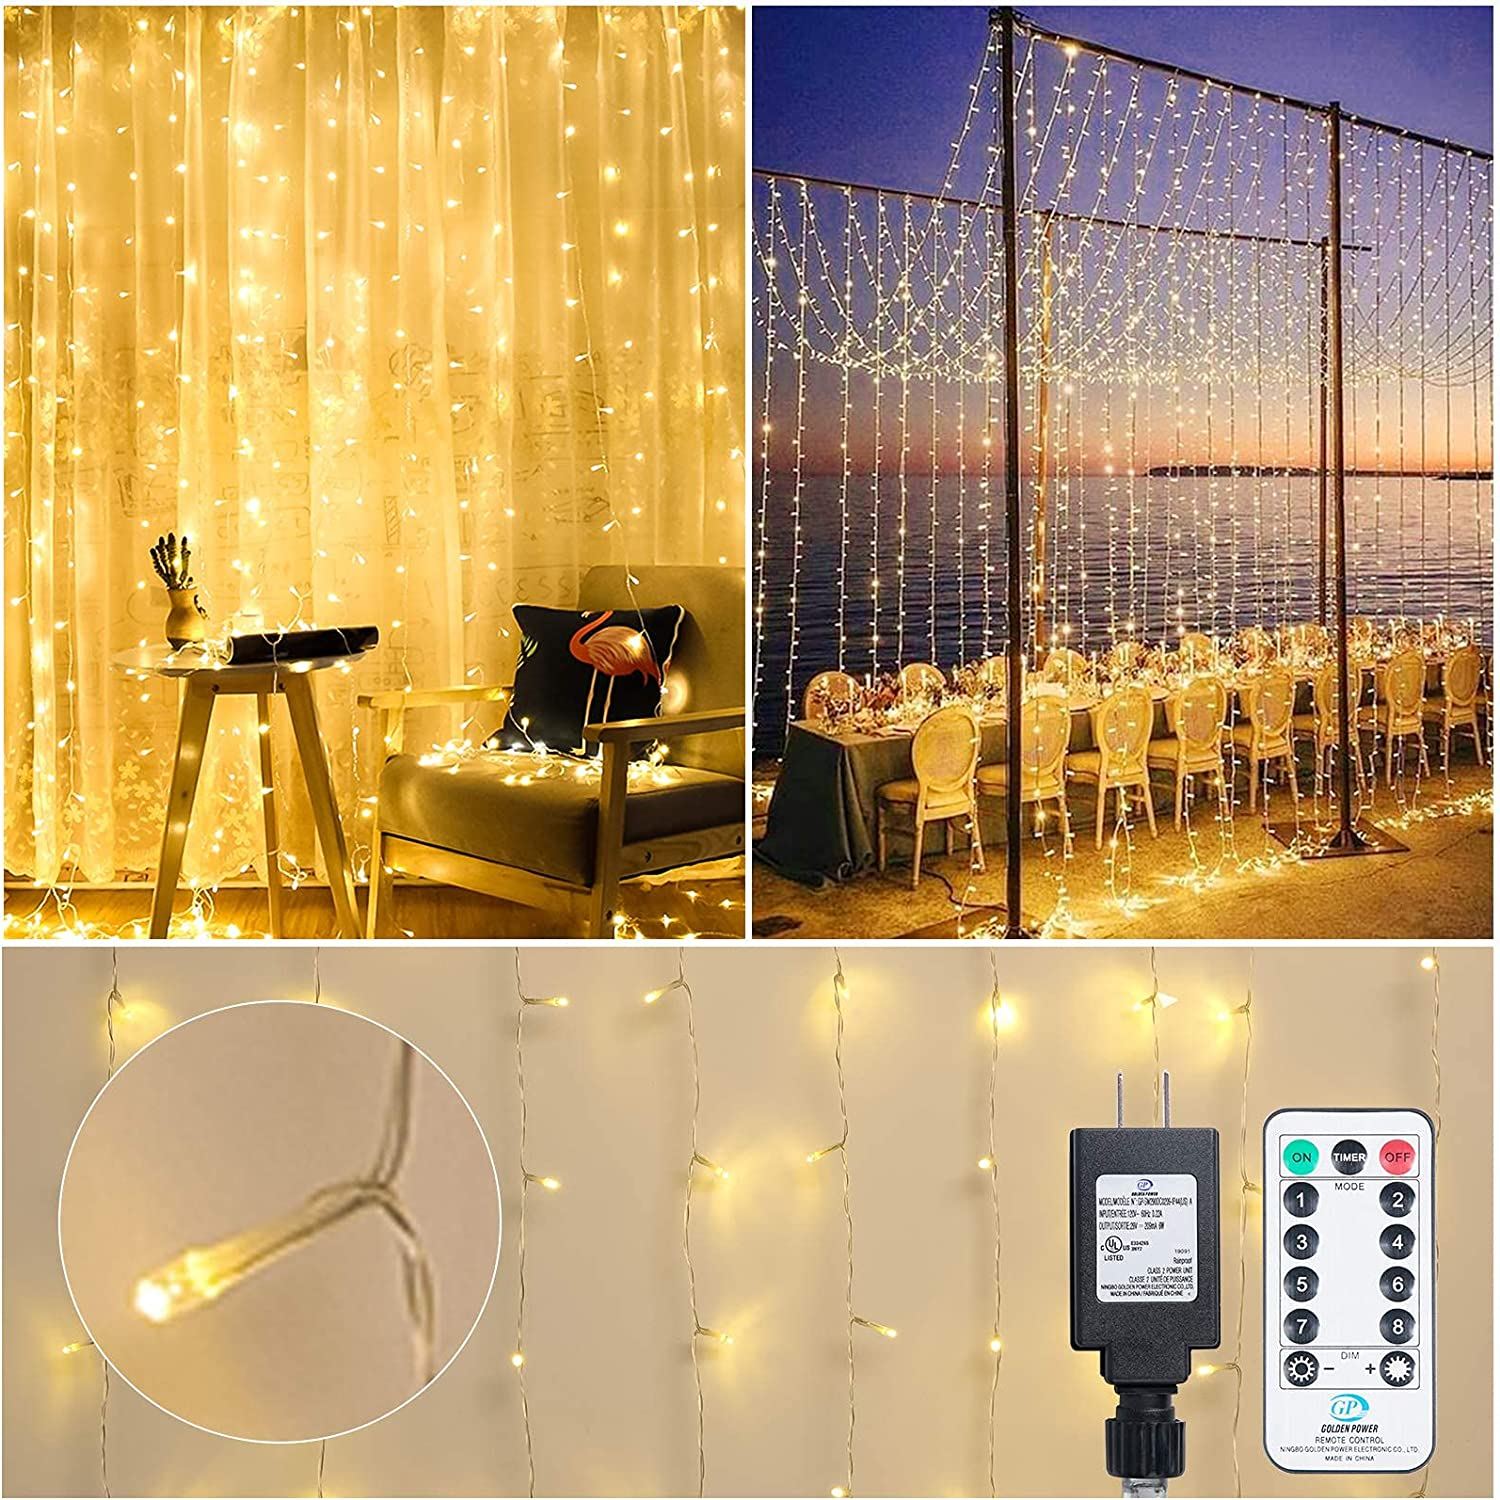 Curtain Lights 300 LED 9.8 x 9.8 Feet Fairy String 8 Modes Dimmable Timer with Remote Connectable Bedroom Wall Decor Window Indoor Bathroom Dorm Room Party Wedding Hanging Twinkle Lights Warm White